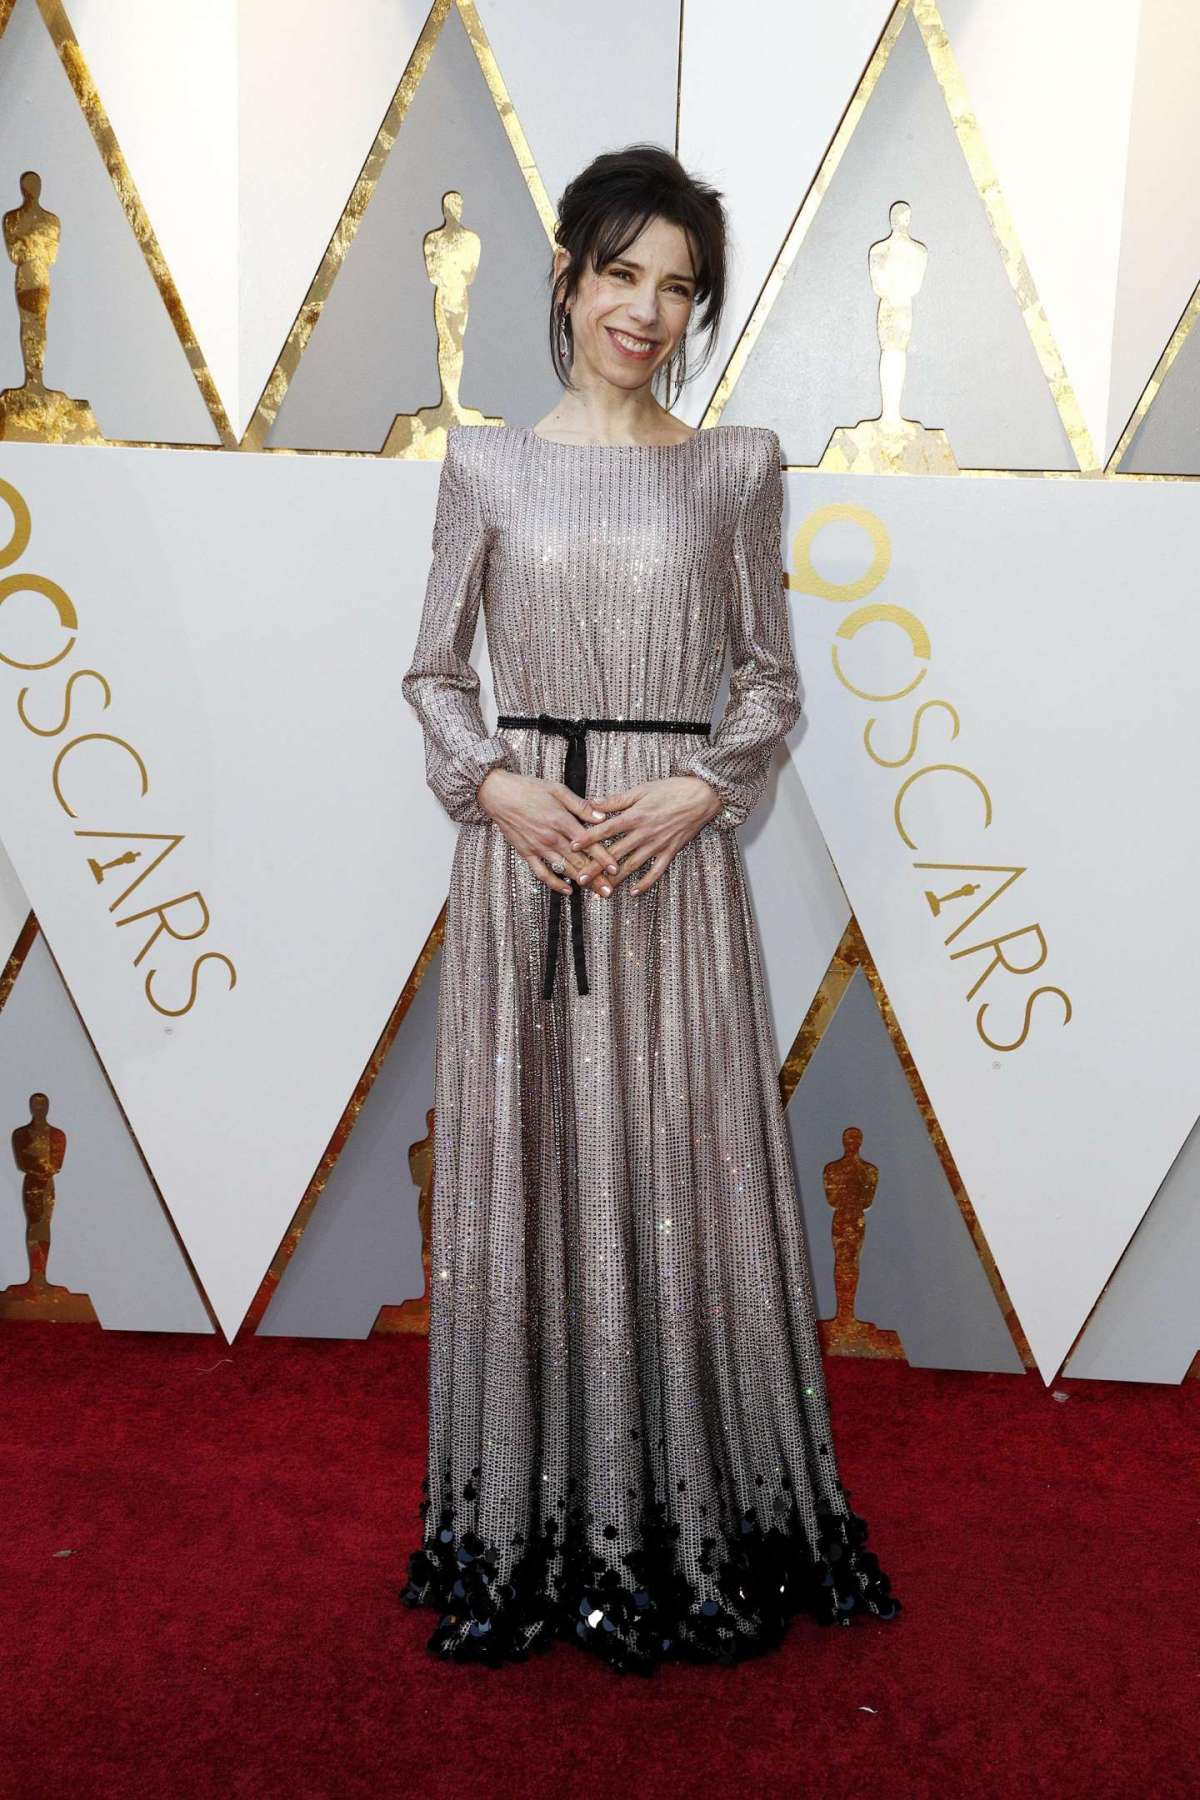 Sally Hawkins in Armani Privé con gioielli Chopard